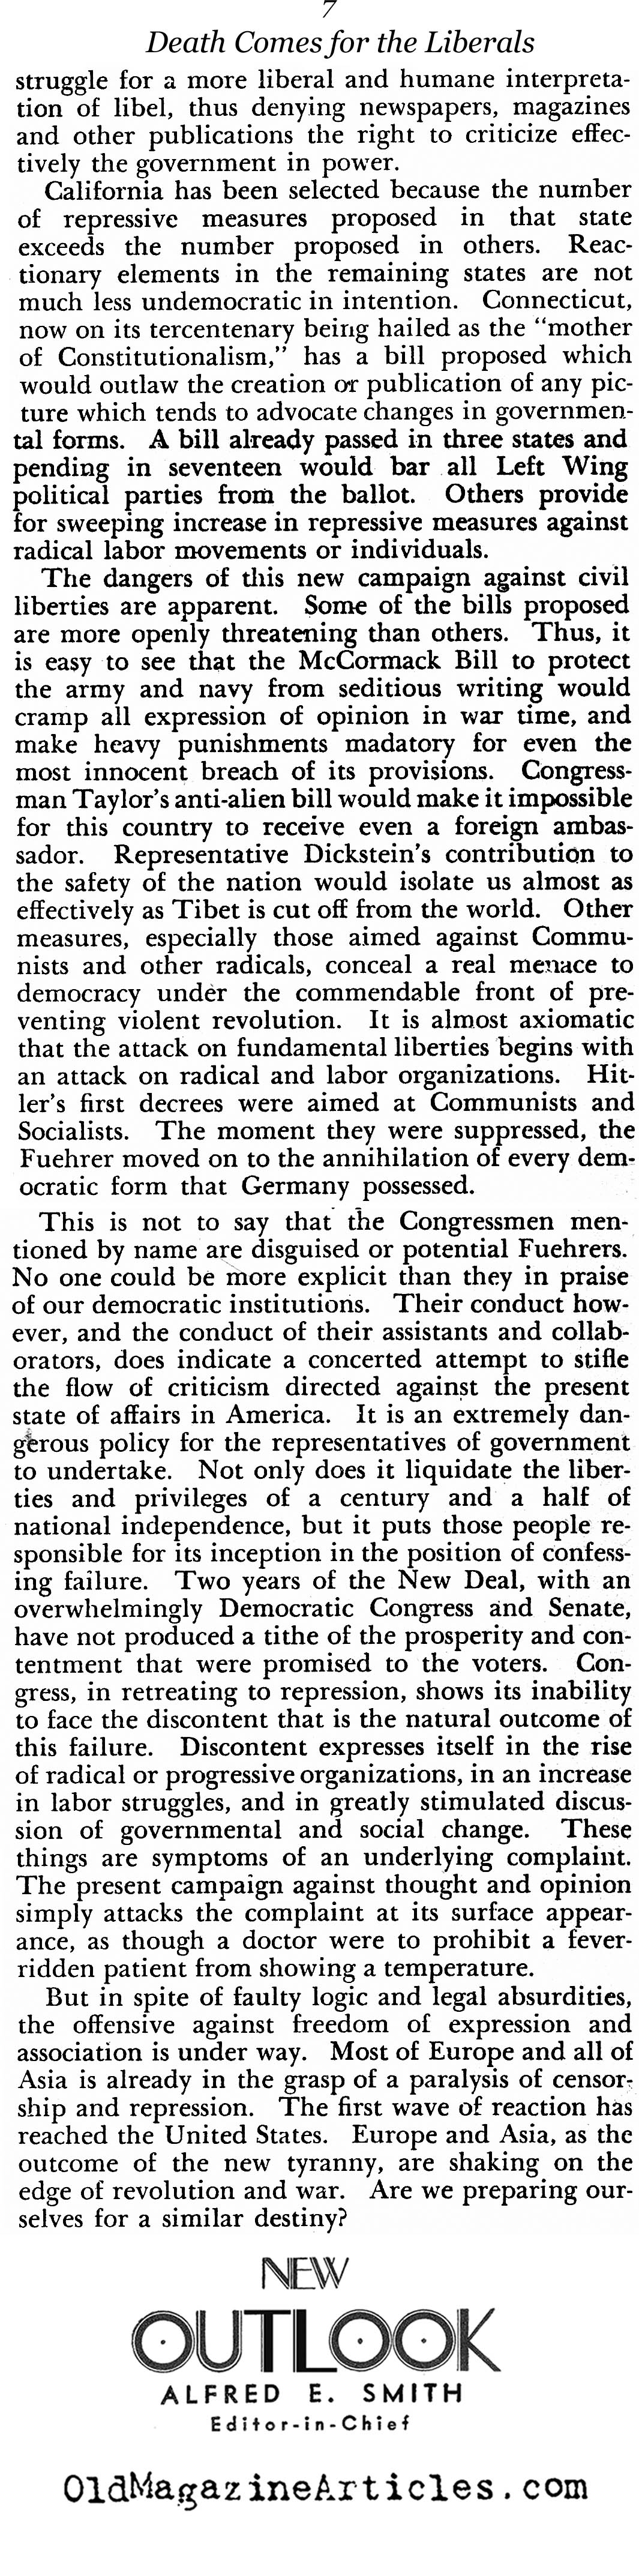 Tyranny At Home (New Outlook Magazine, 1935)